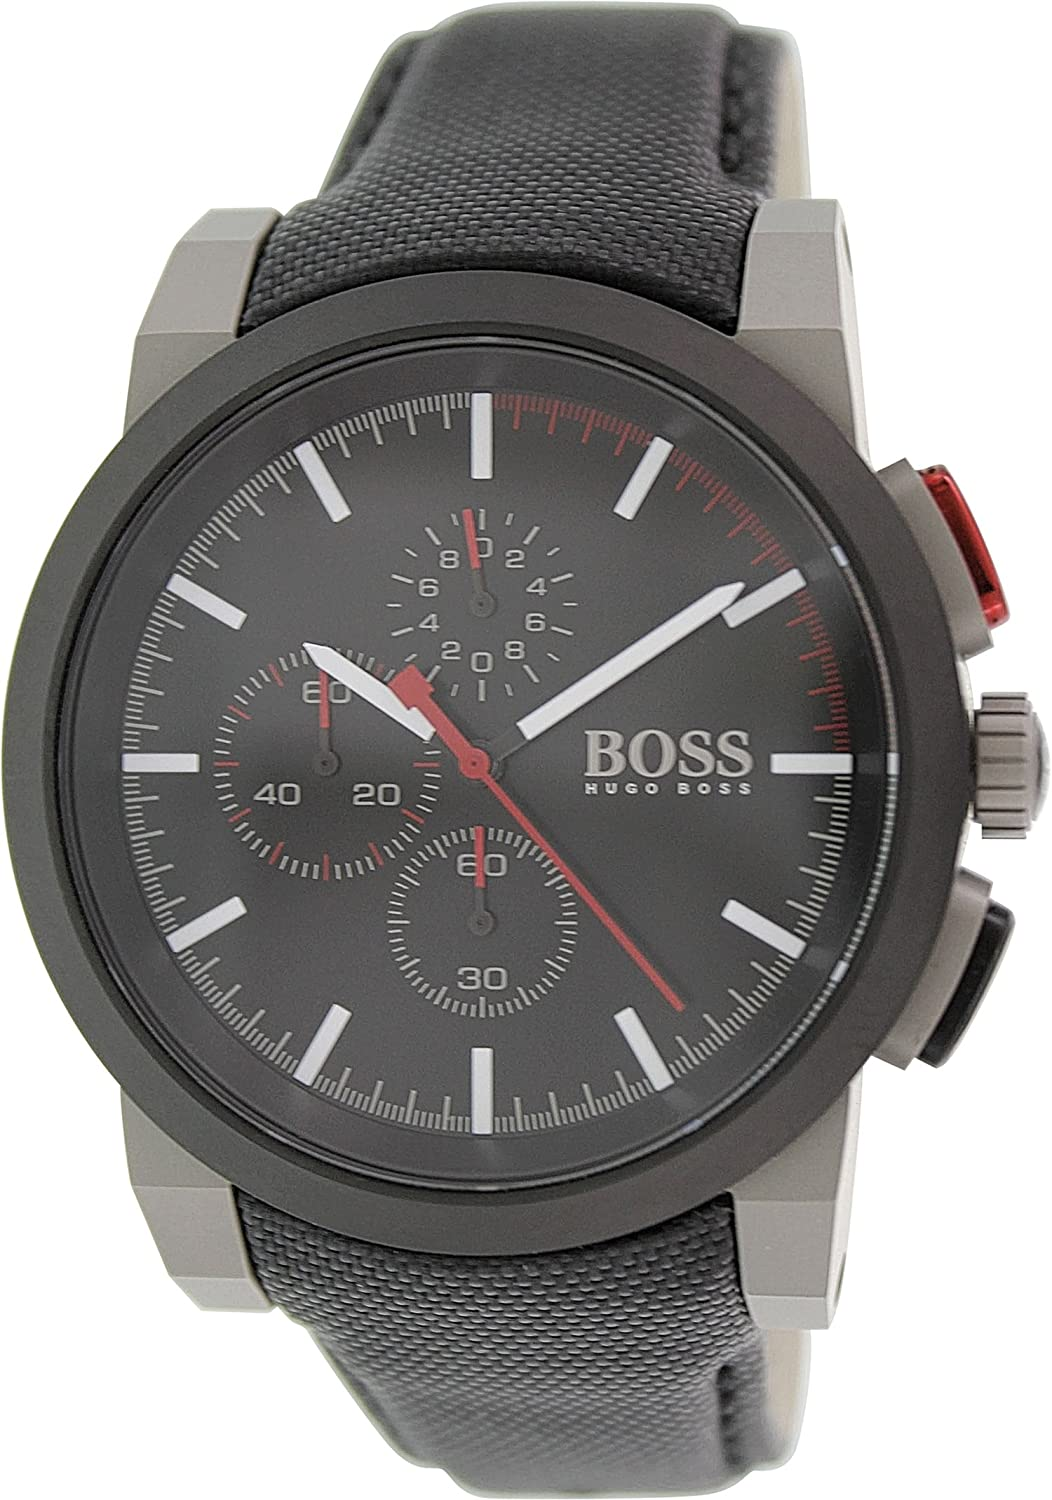 Hugo Boss Herren Men's Chronograph Analog Dress Quartz Reloj 1512979